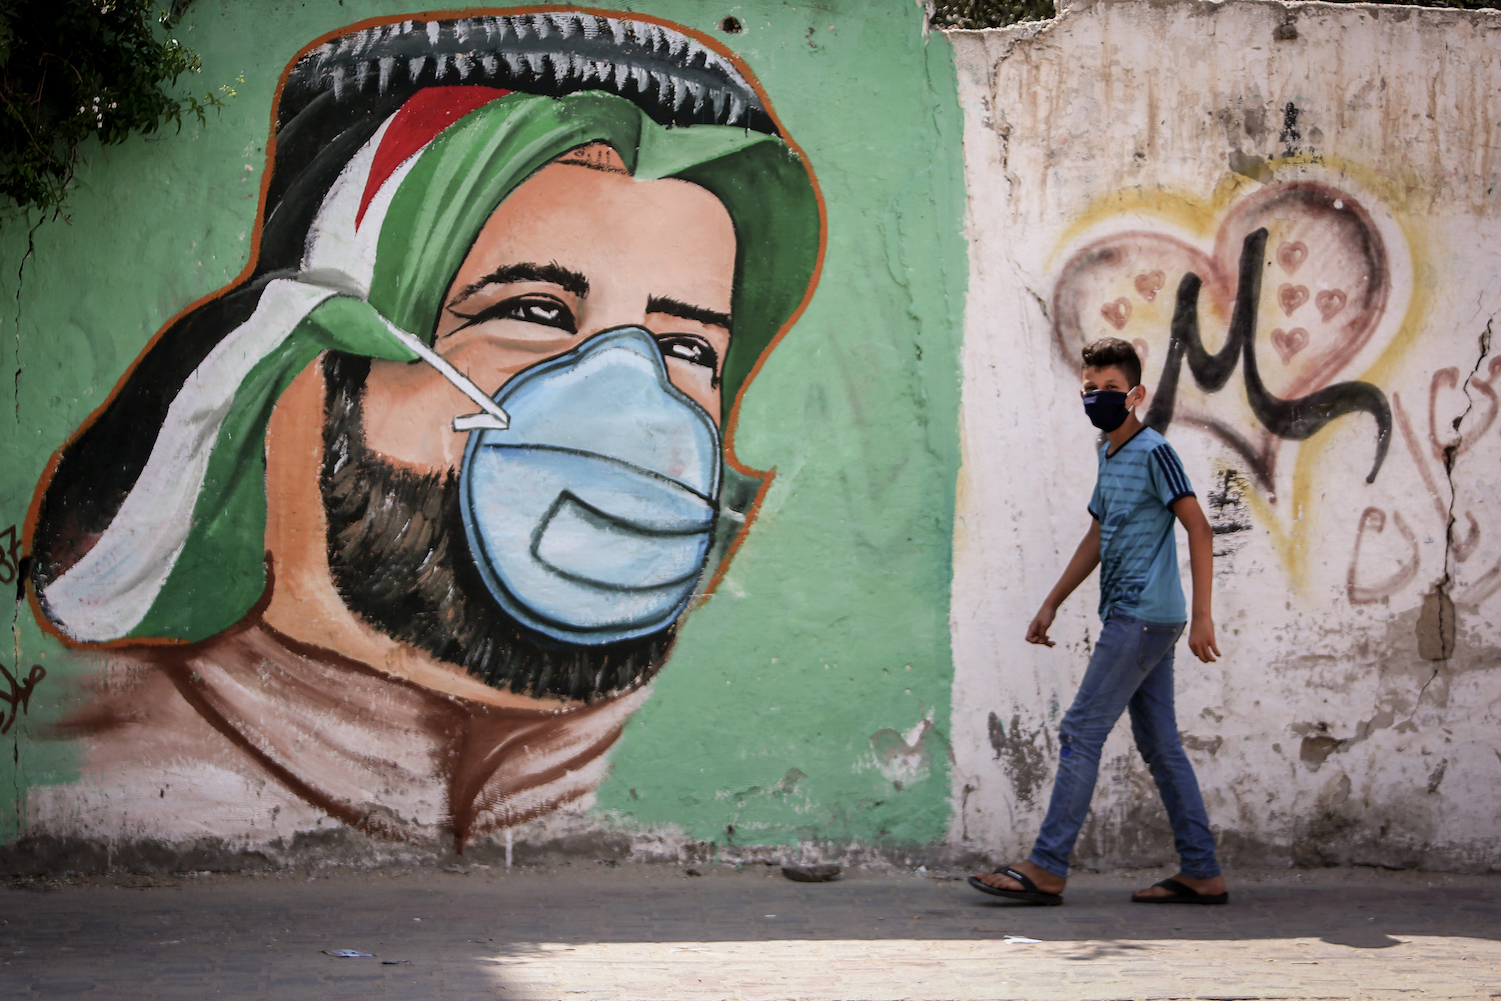 A Palestinian boy walks across a mural painted on a wall in Rafah, Gaza, as part of a campaign to raise awareness on COVID-19, on September 5, 2020. (Abed Rahim Khatib/Flash90)